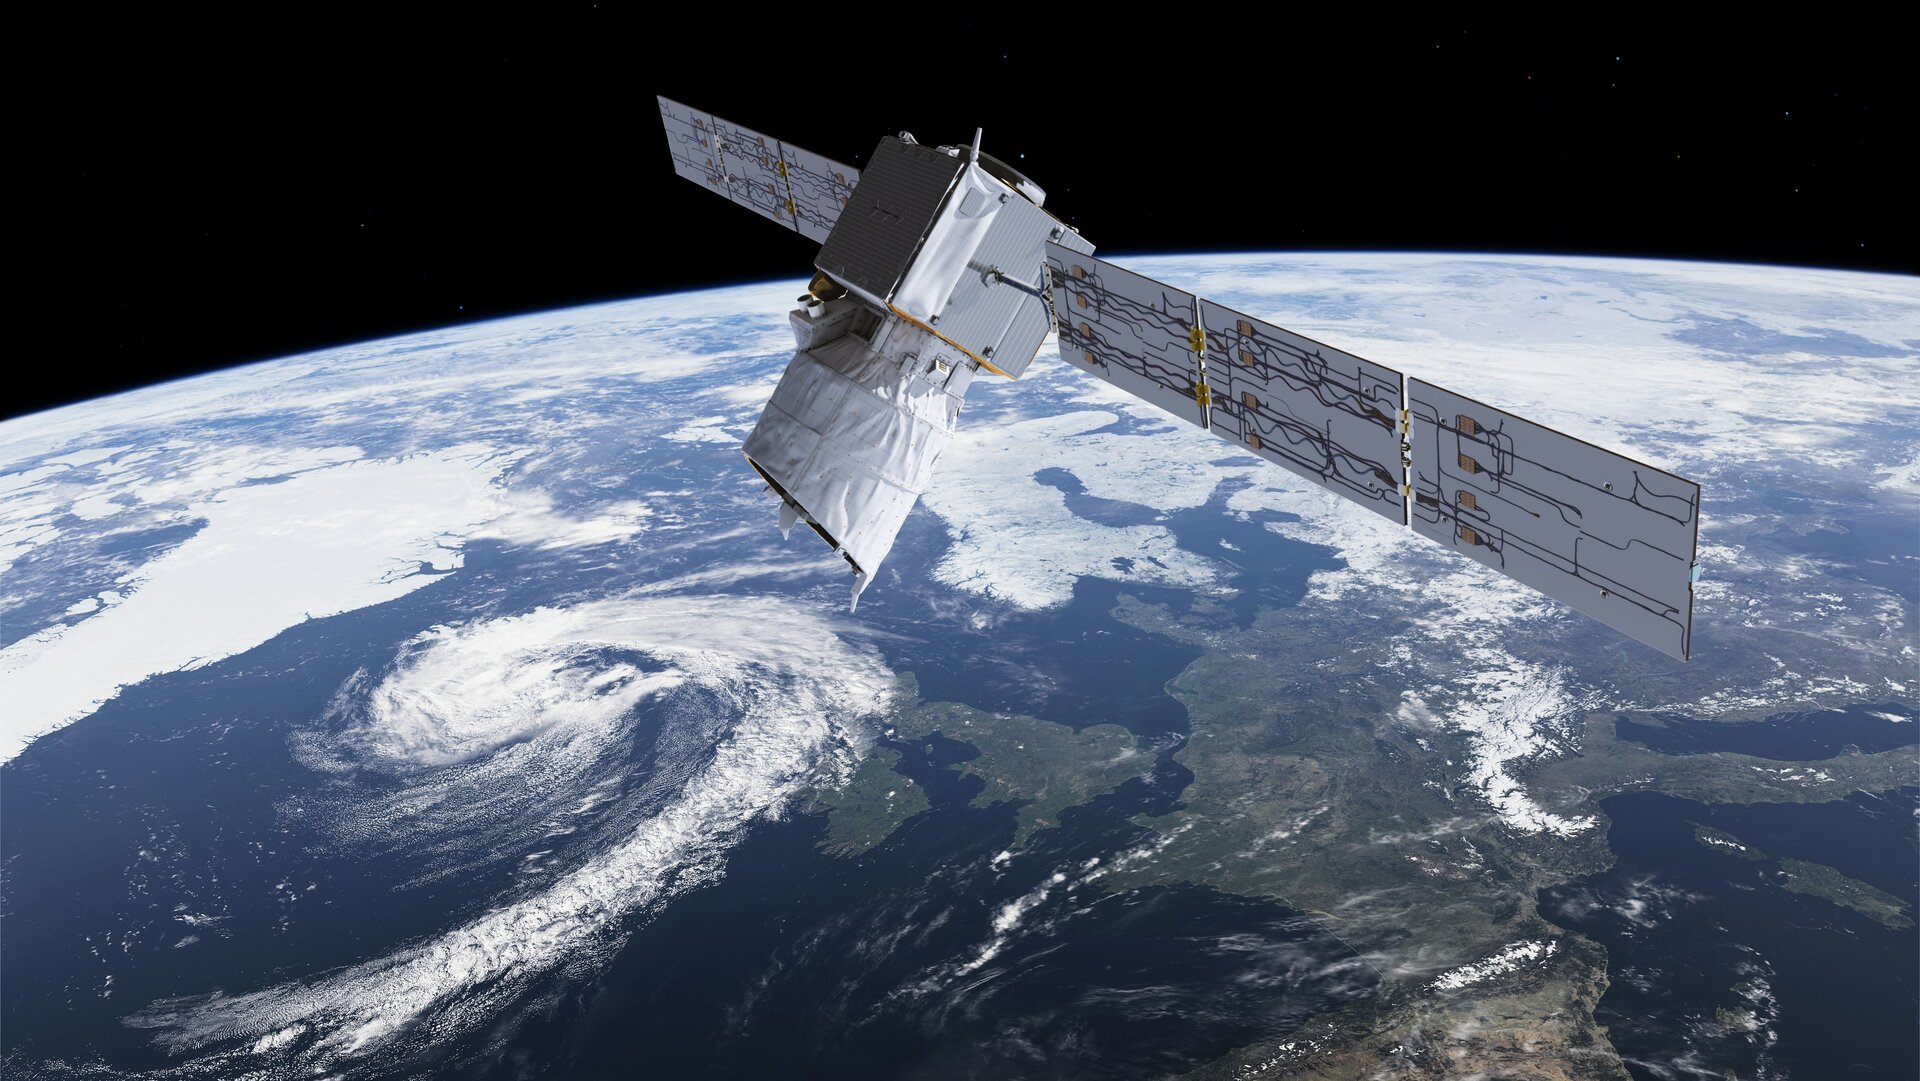 Aeolus was recently manoeuvred to avoid collision with a satellite in a constellation